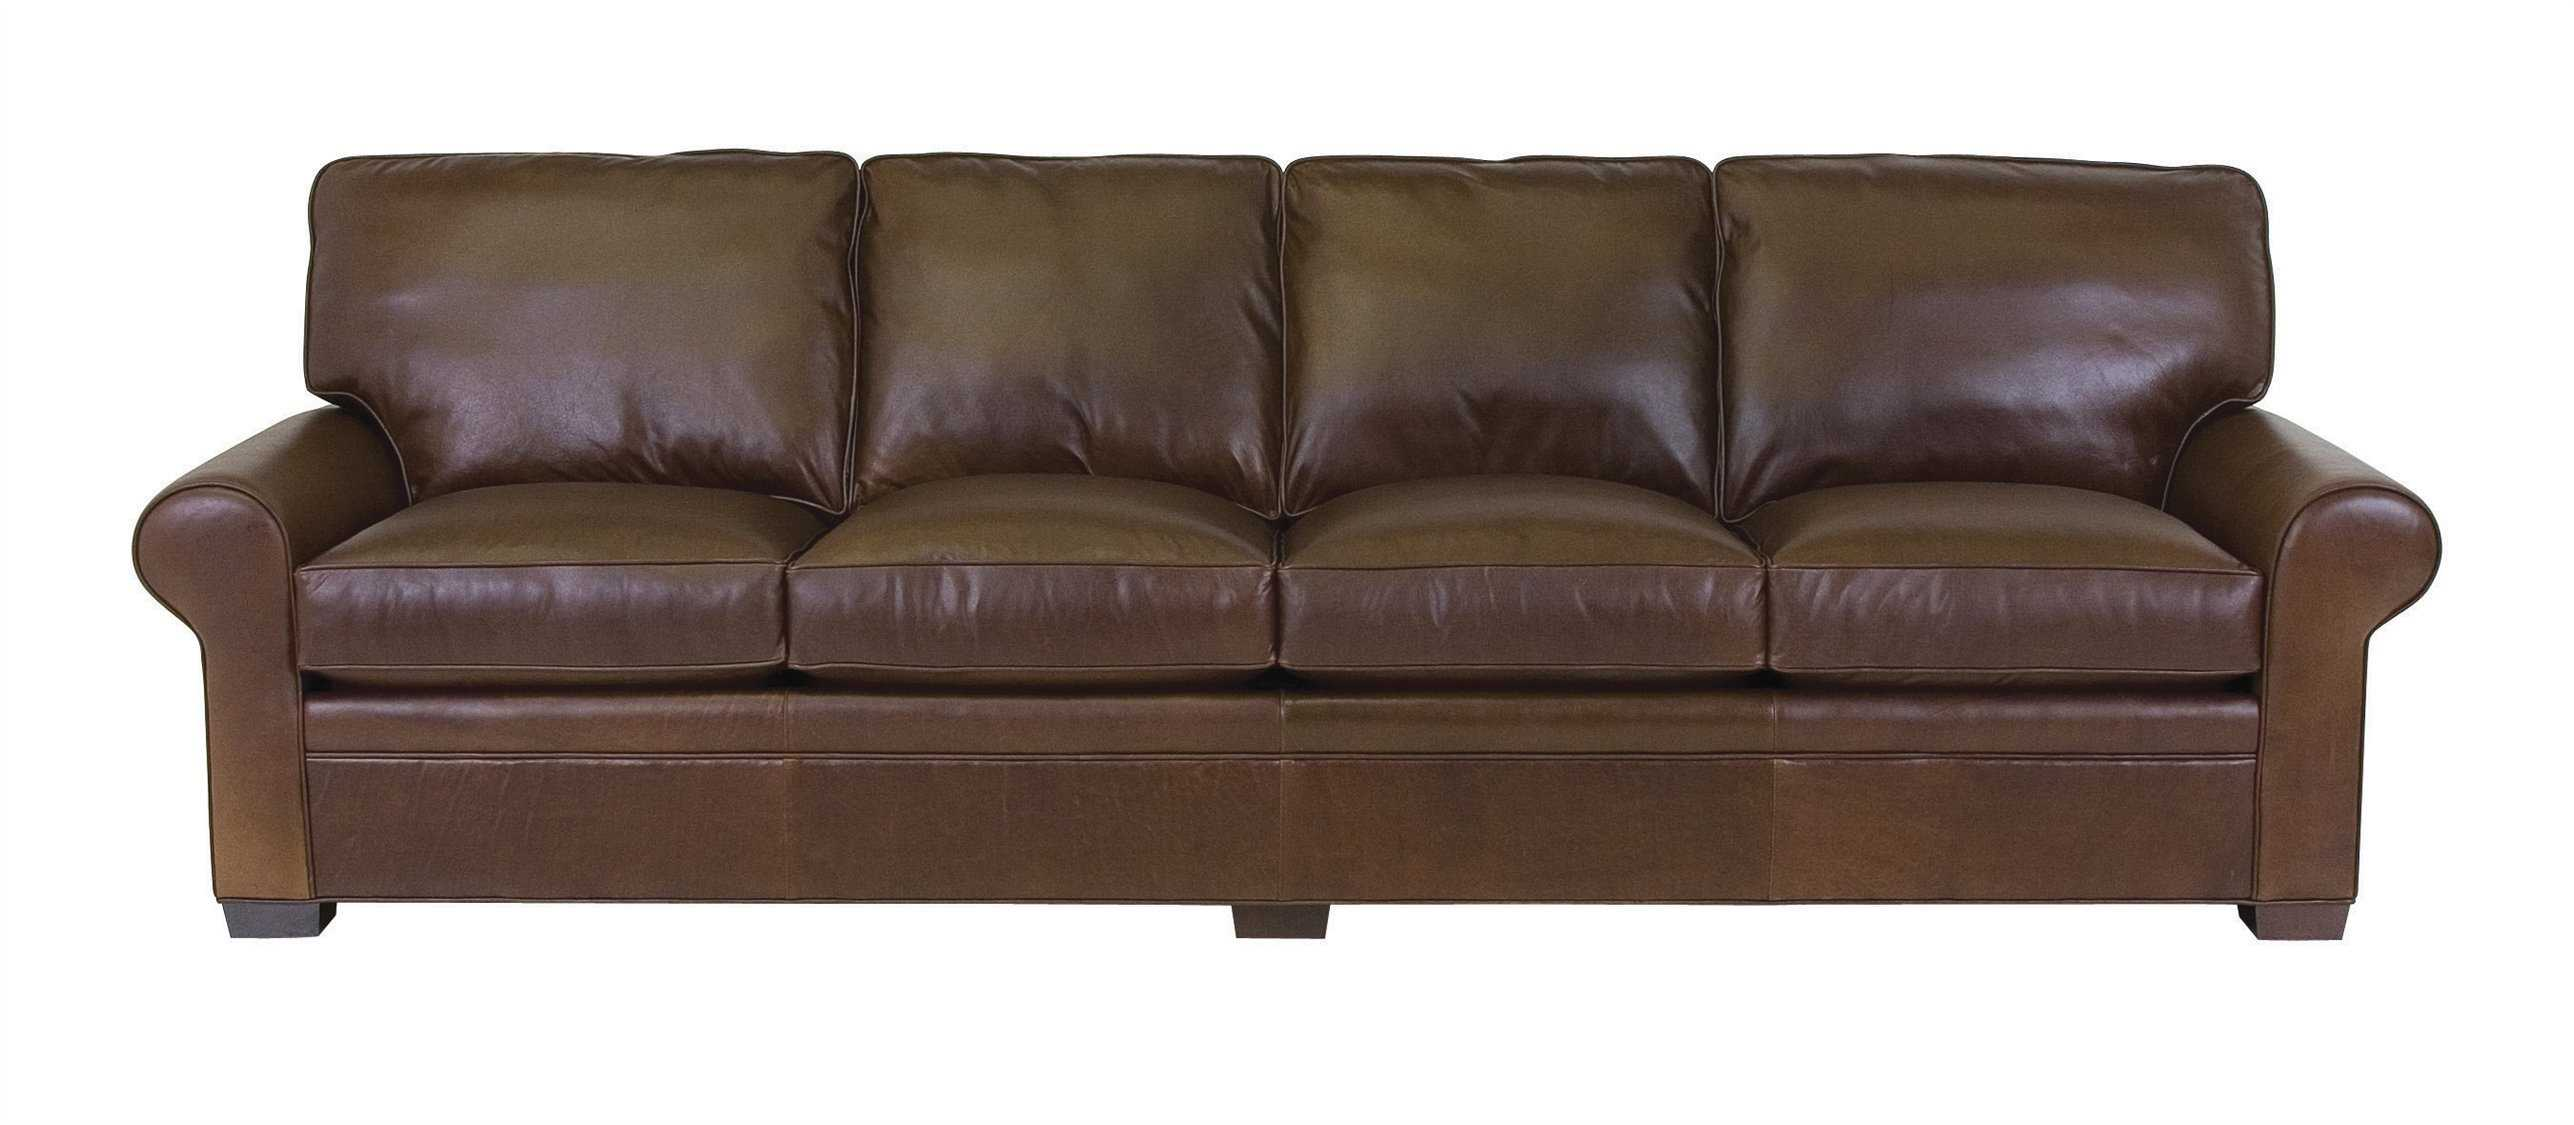 High Quality Classic Leather Library Sofa Classic Leather Library Sofa